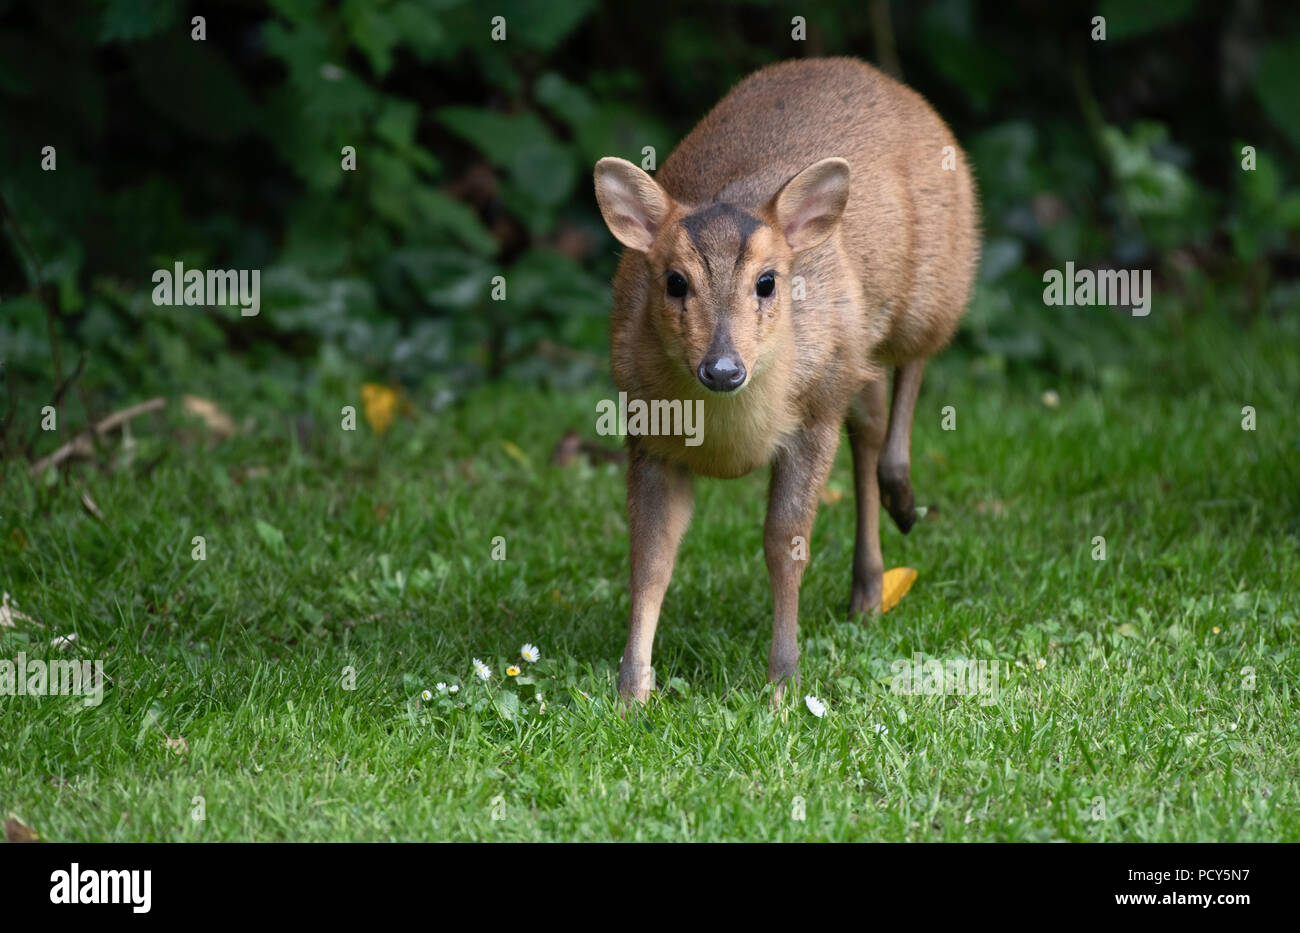 A Reeves Muntjac female visits a North Norfolk garden. - Stock Image